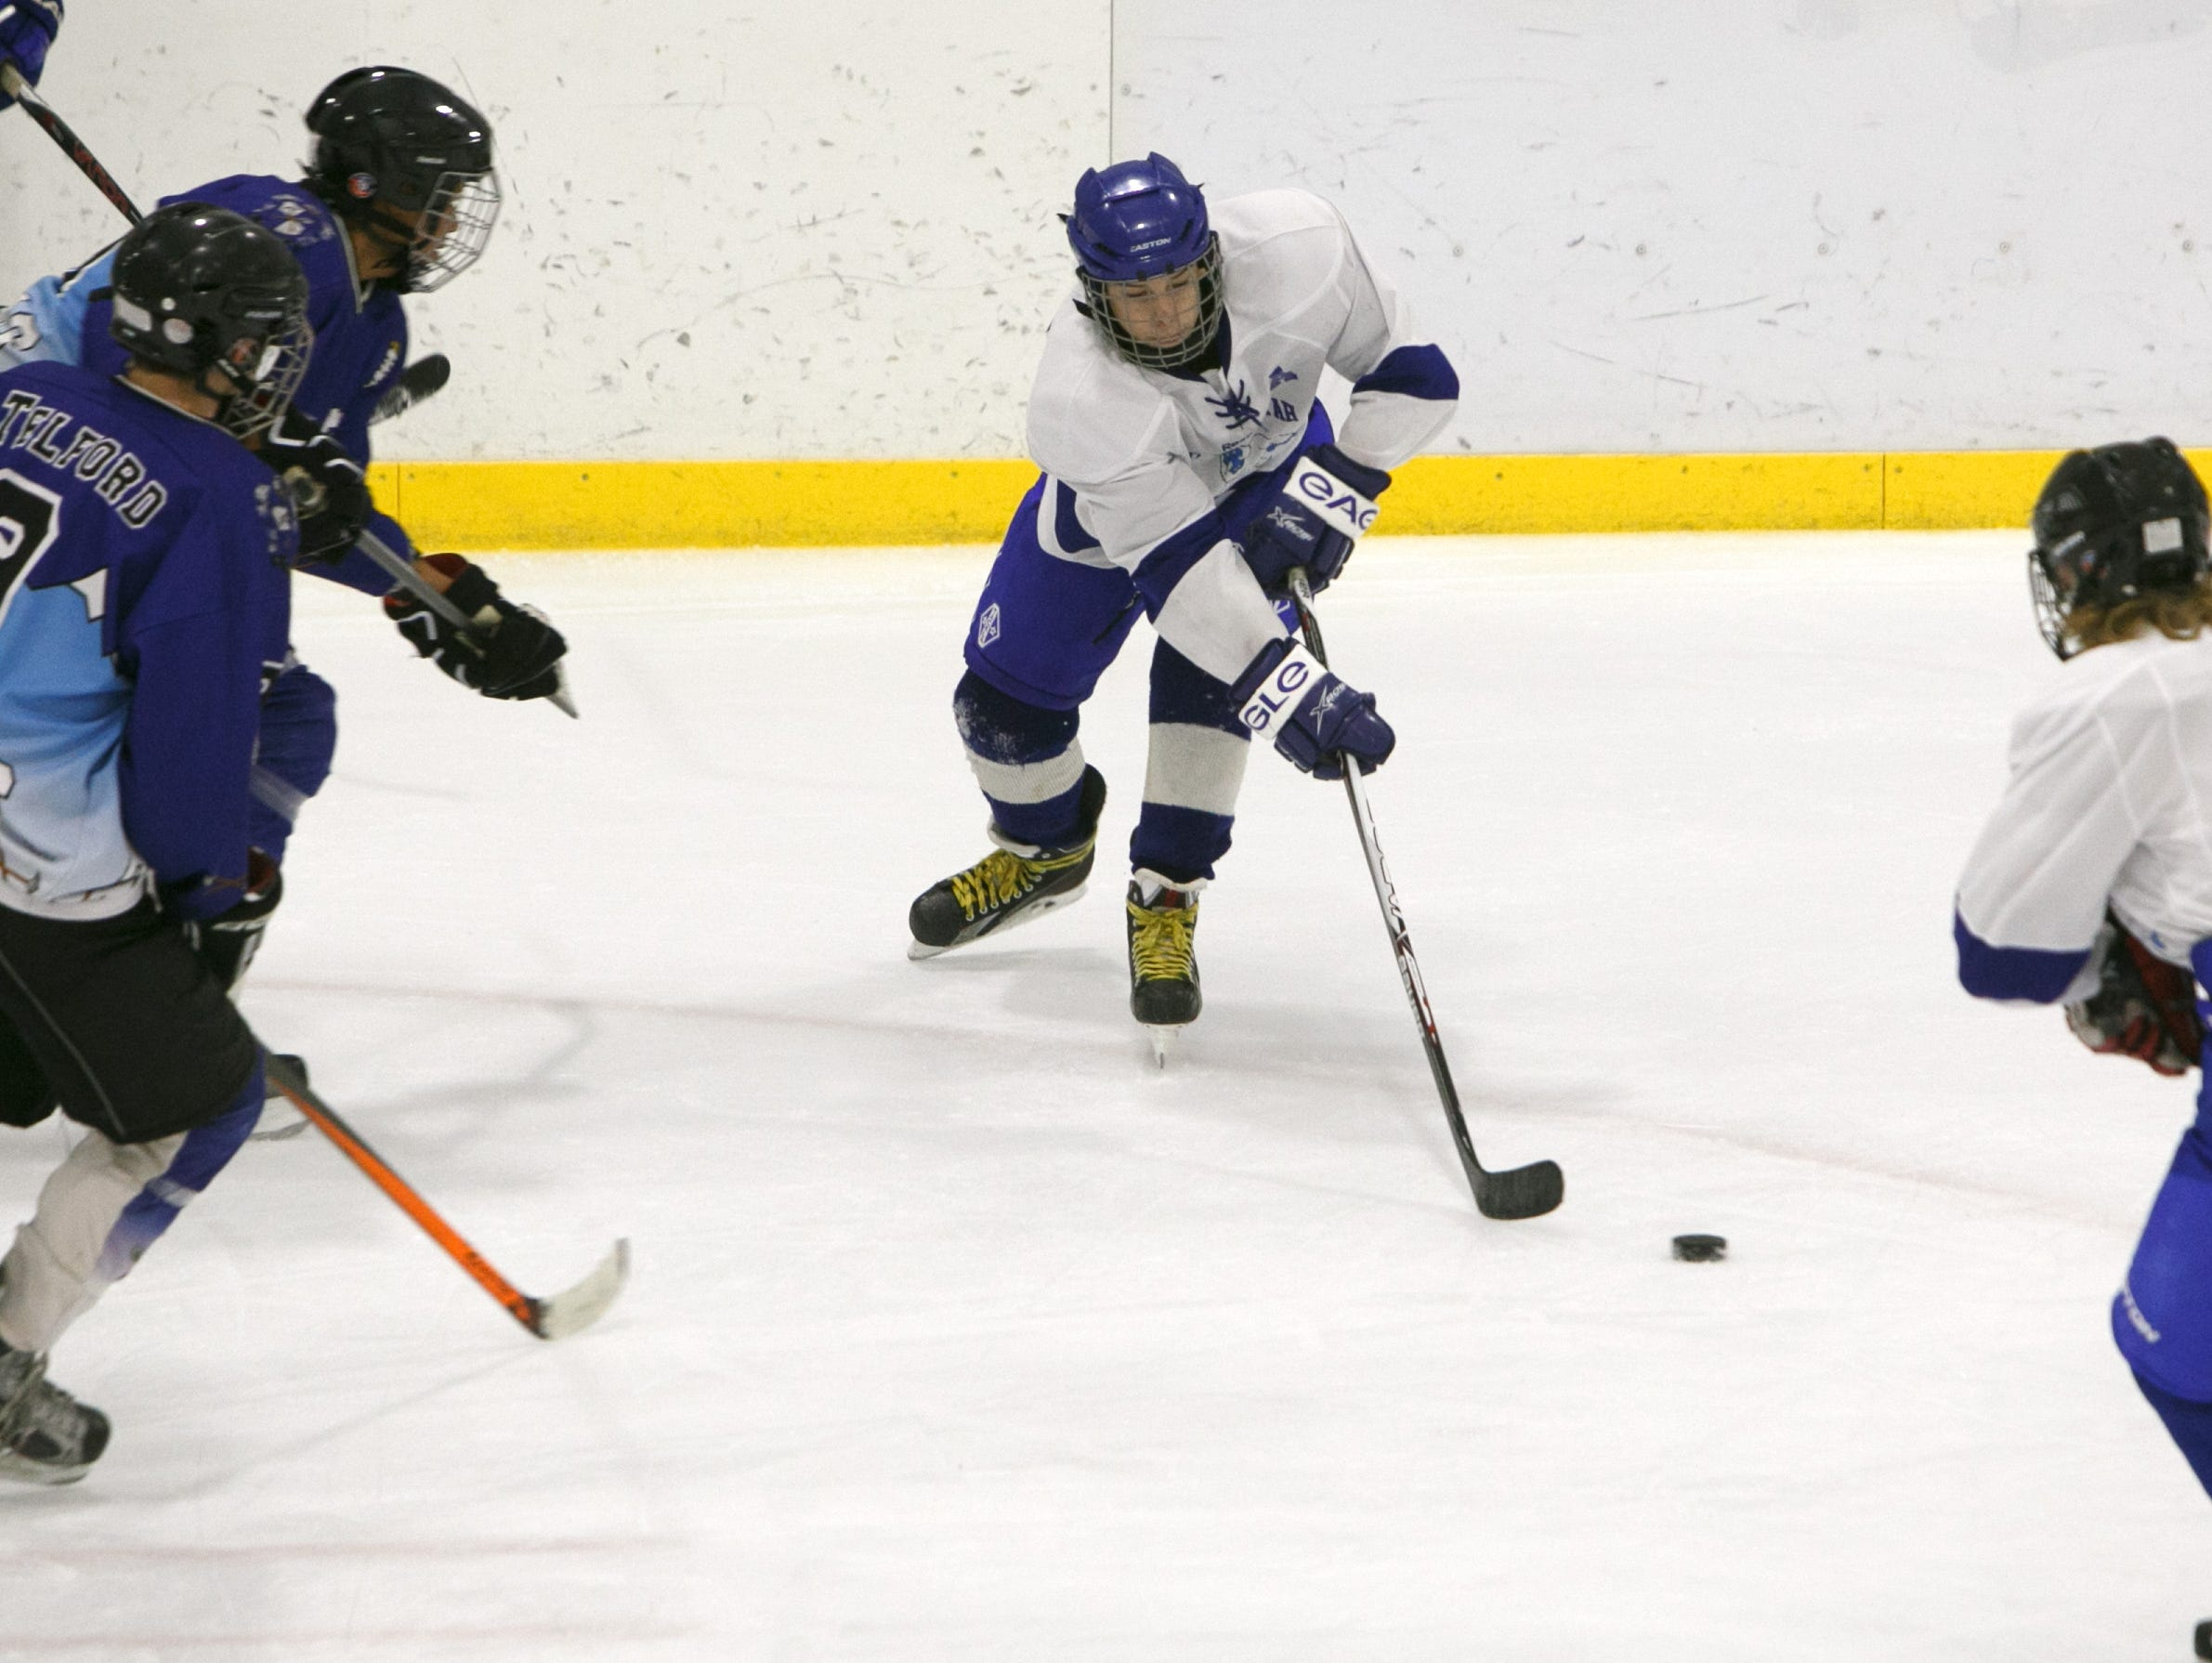 Southern Utah Independent forward Josh Moss, center, tries to get around a pair of Bingham High School players during a game at the Peaks Ice Arena in Provo, Saturday, Nov. 14, 2015.